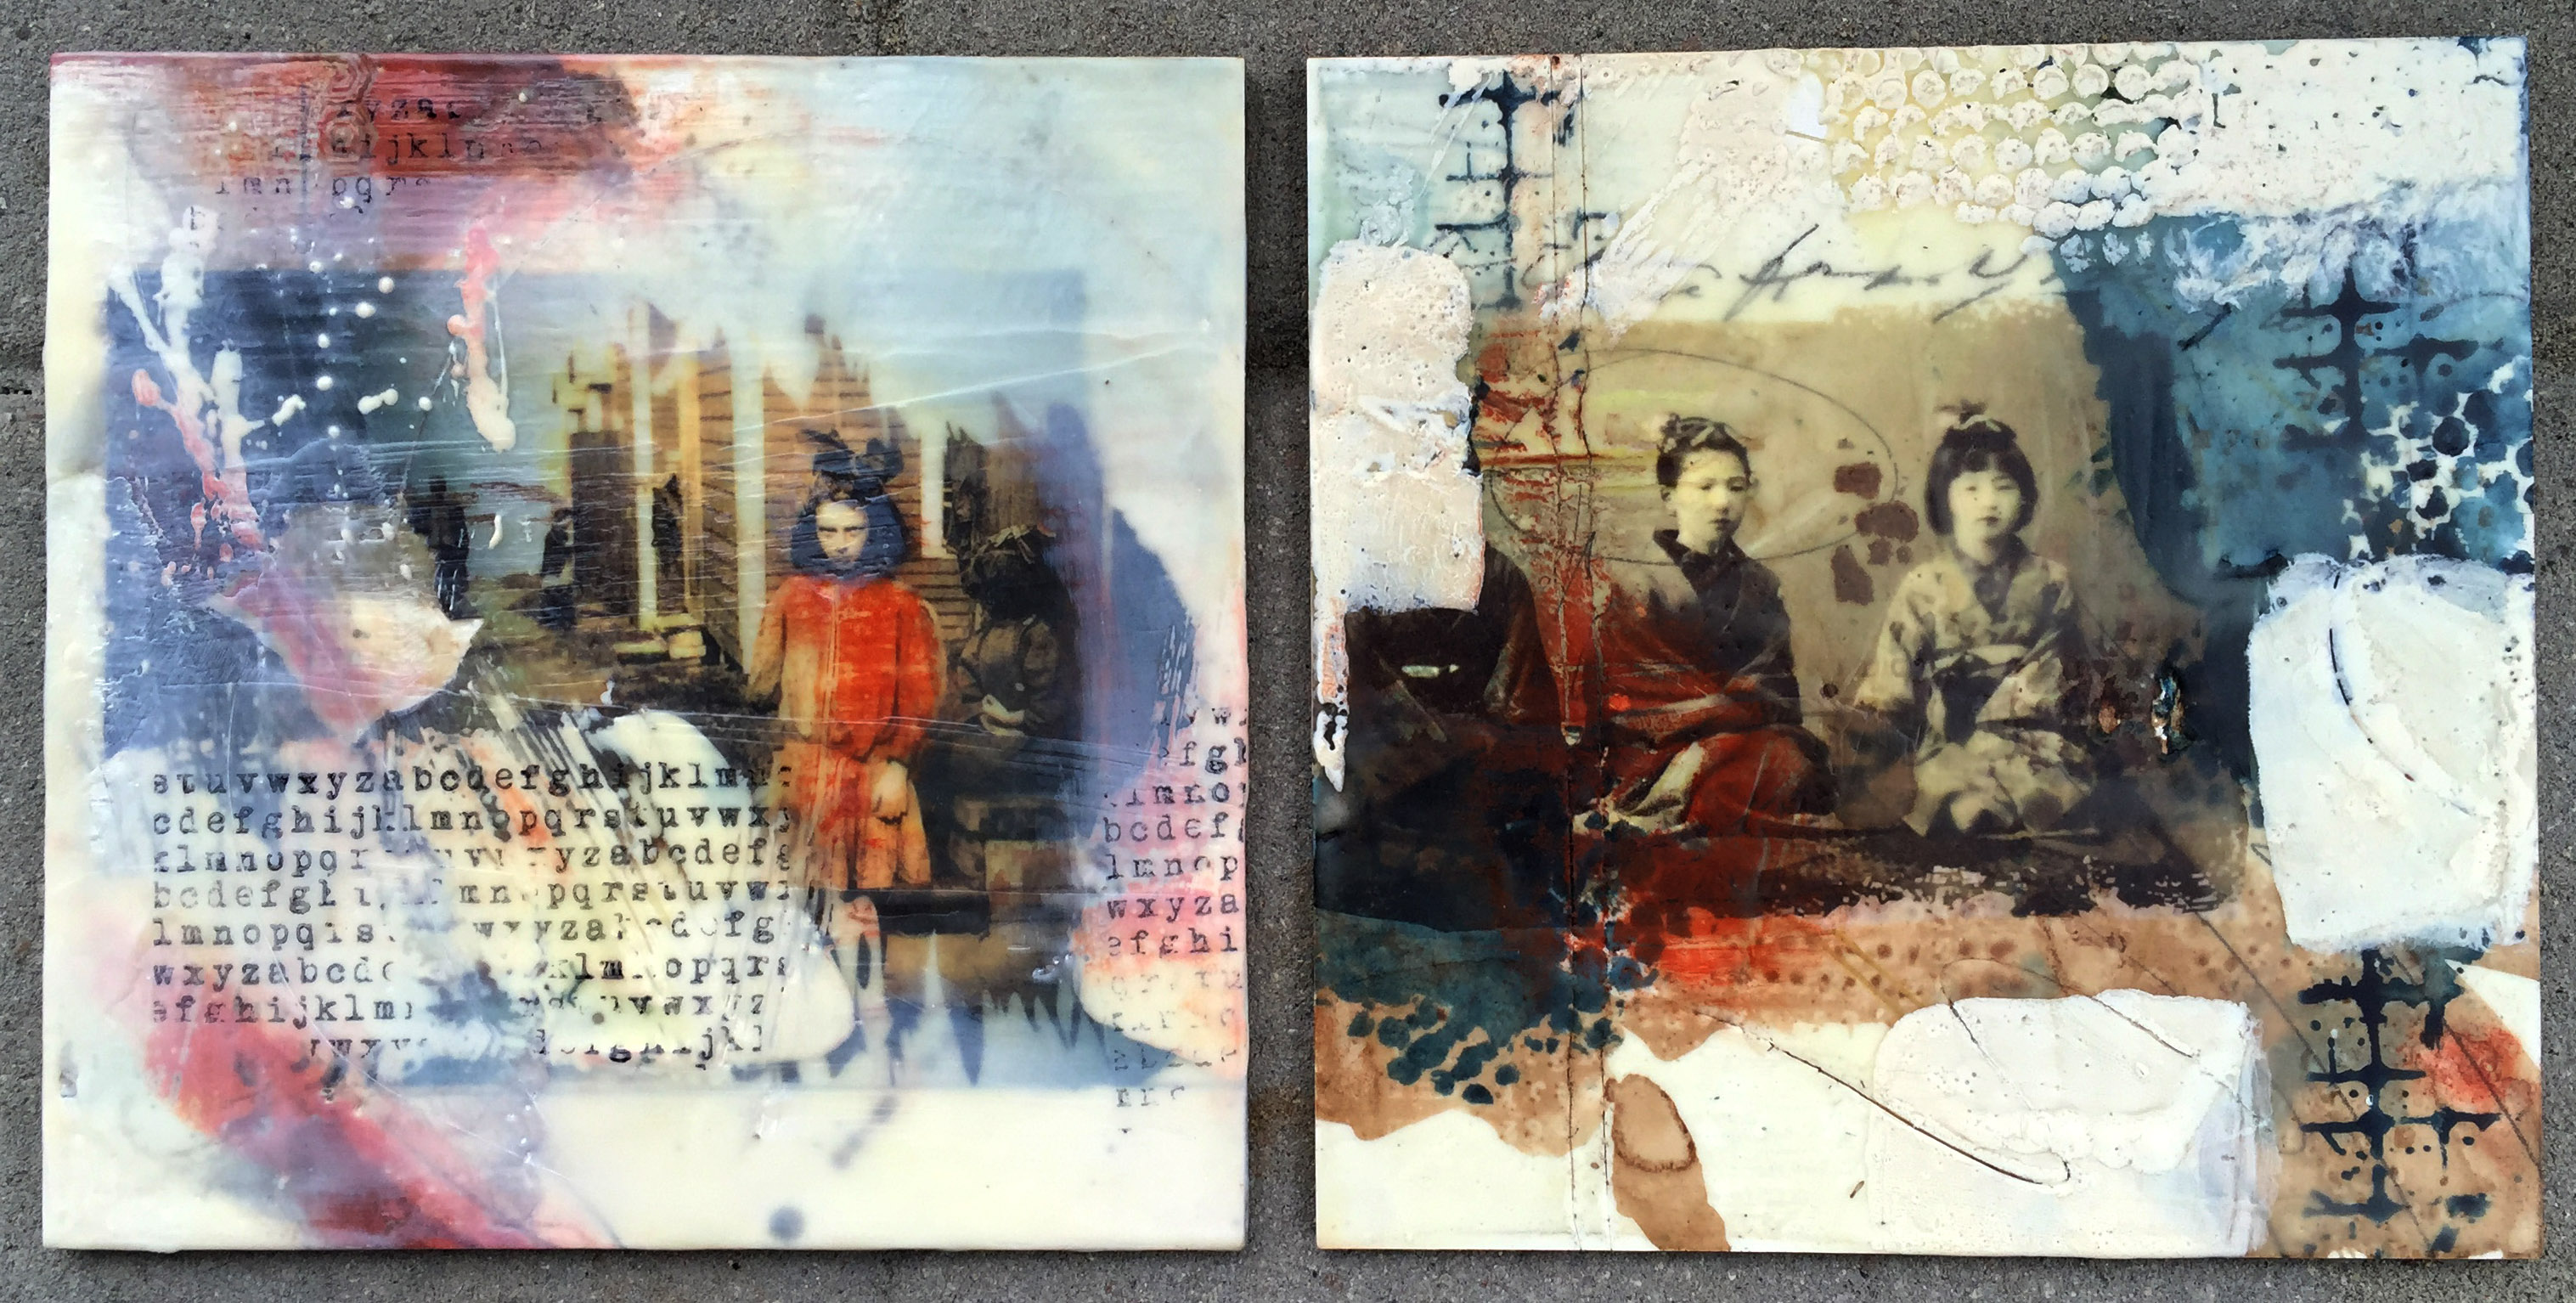 Experimental encaustic work on board with wax, digital images, watercolor and pan pastels